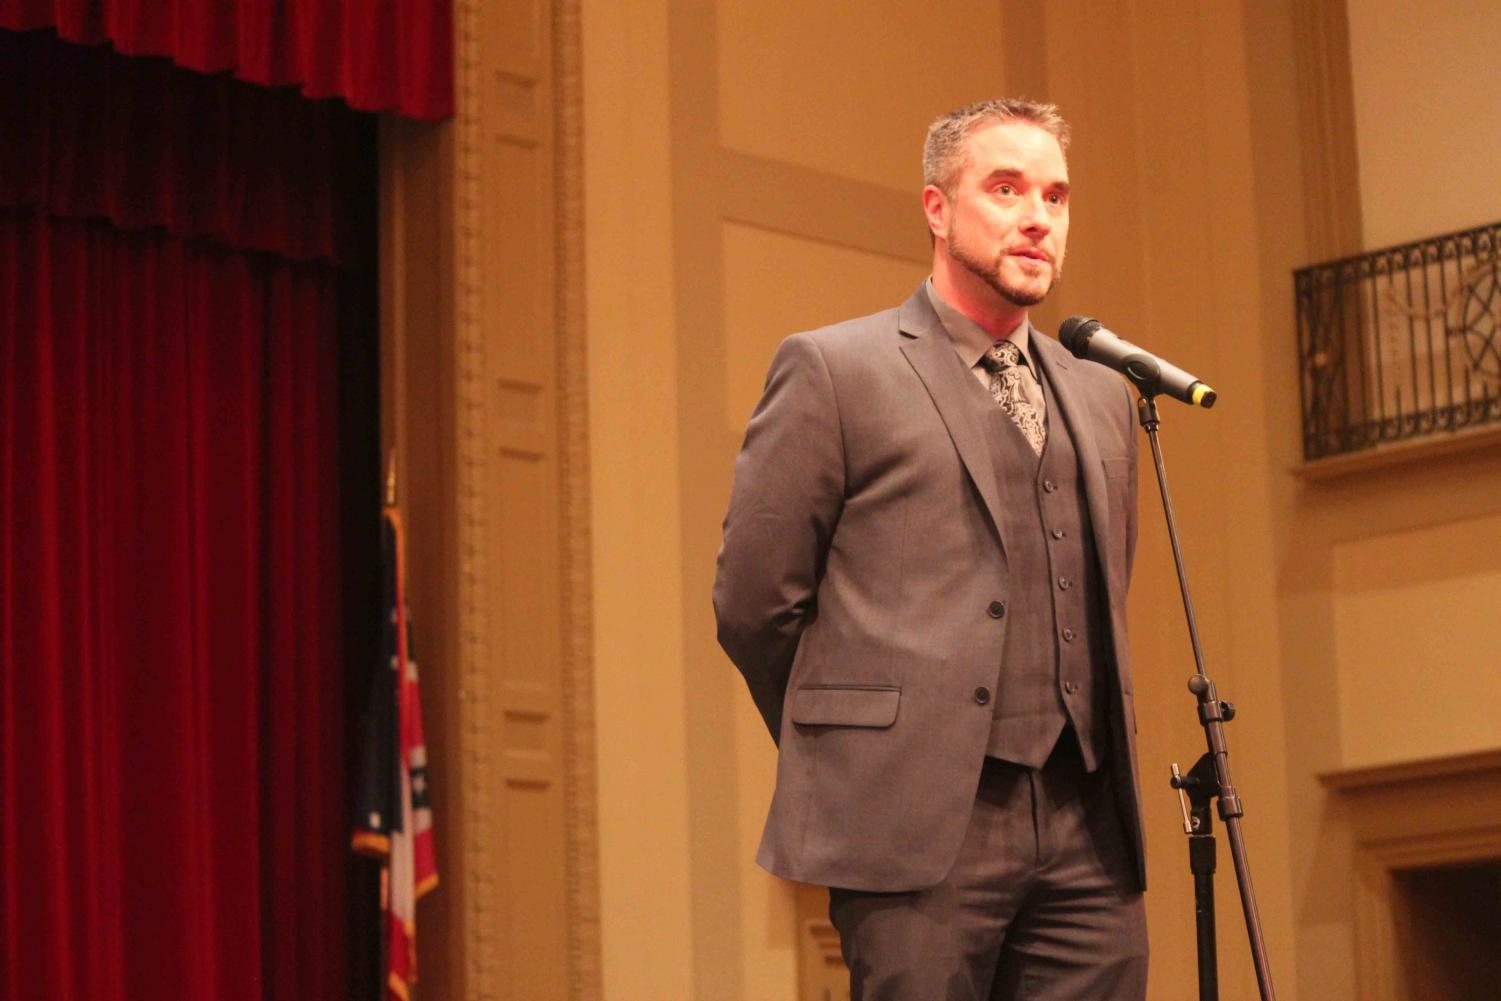 Shaker Heights High School Principal Jonathan Kuehnle speaks with community members, parents, students and staff on March 7, 2016. Kuehnle's placement on leave was announced in an email sent to parents and staff this evening.